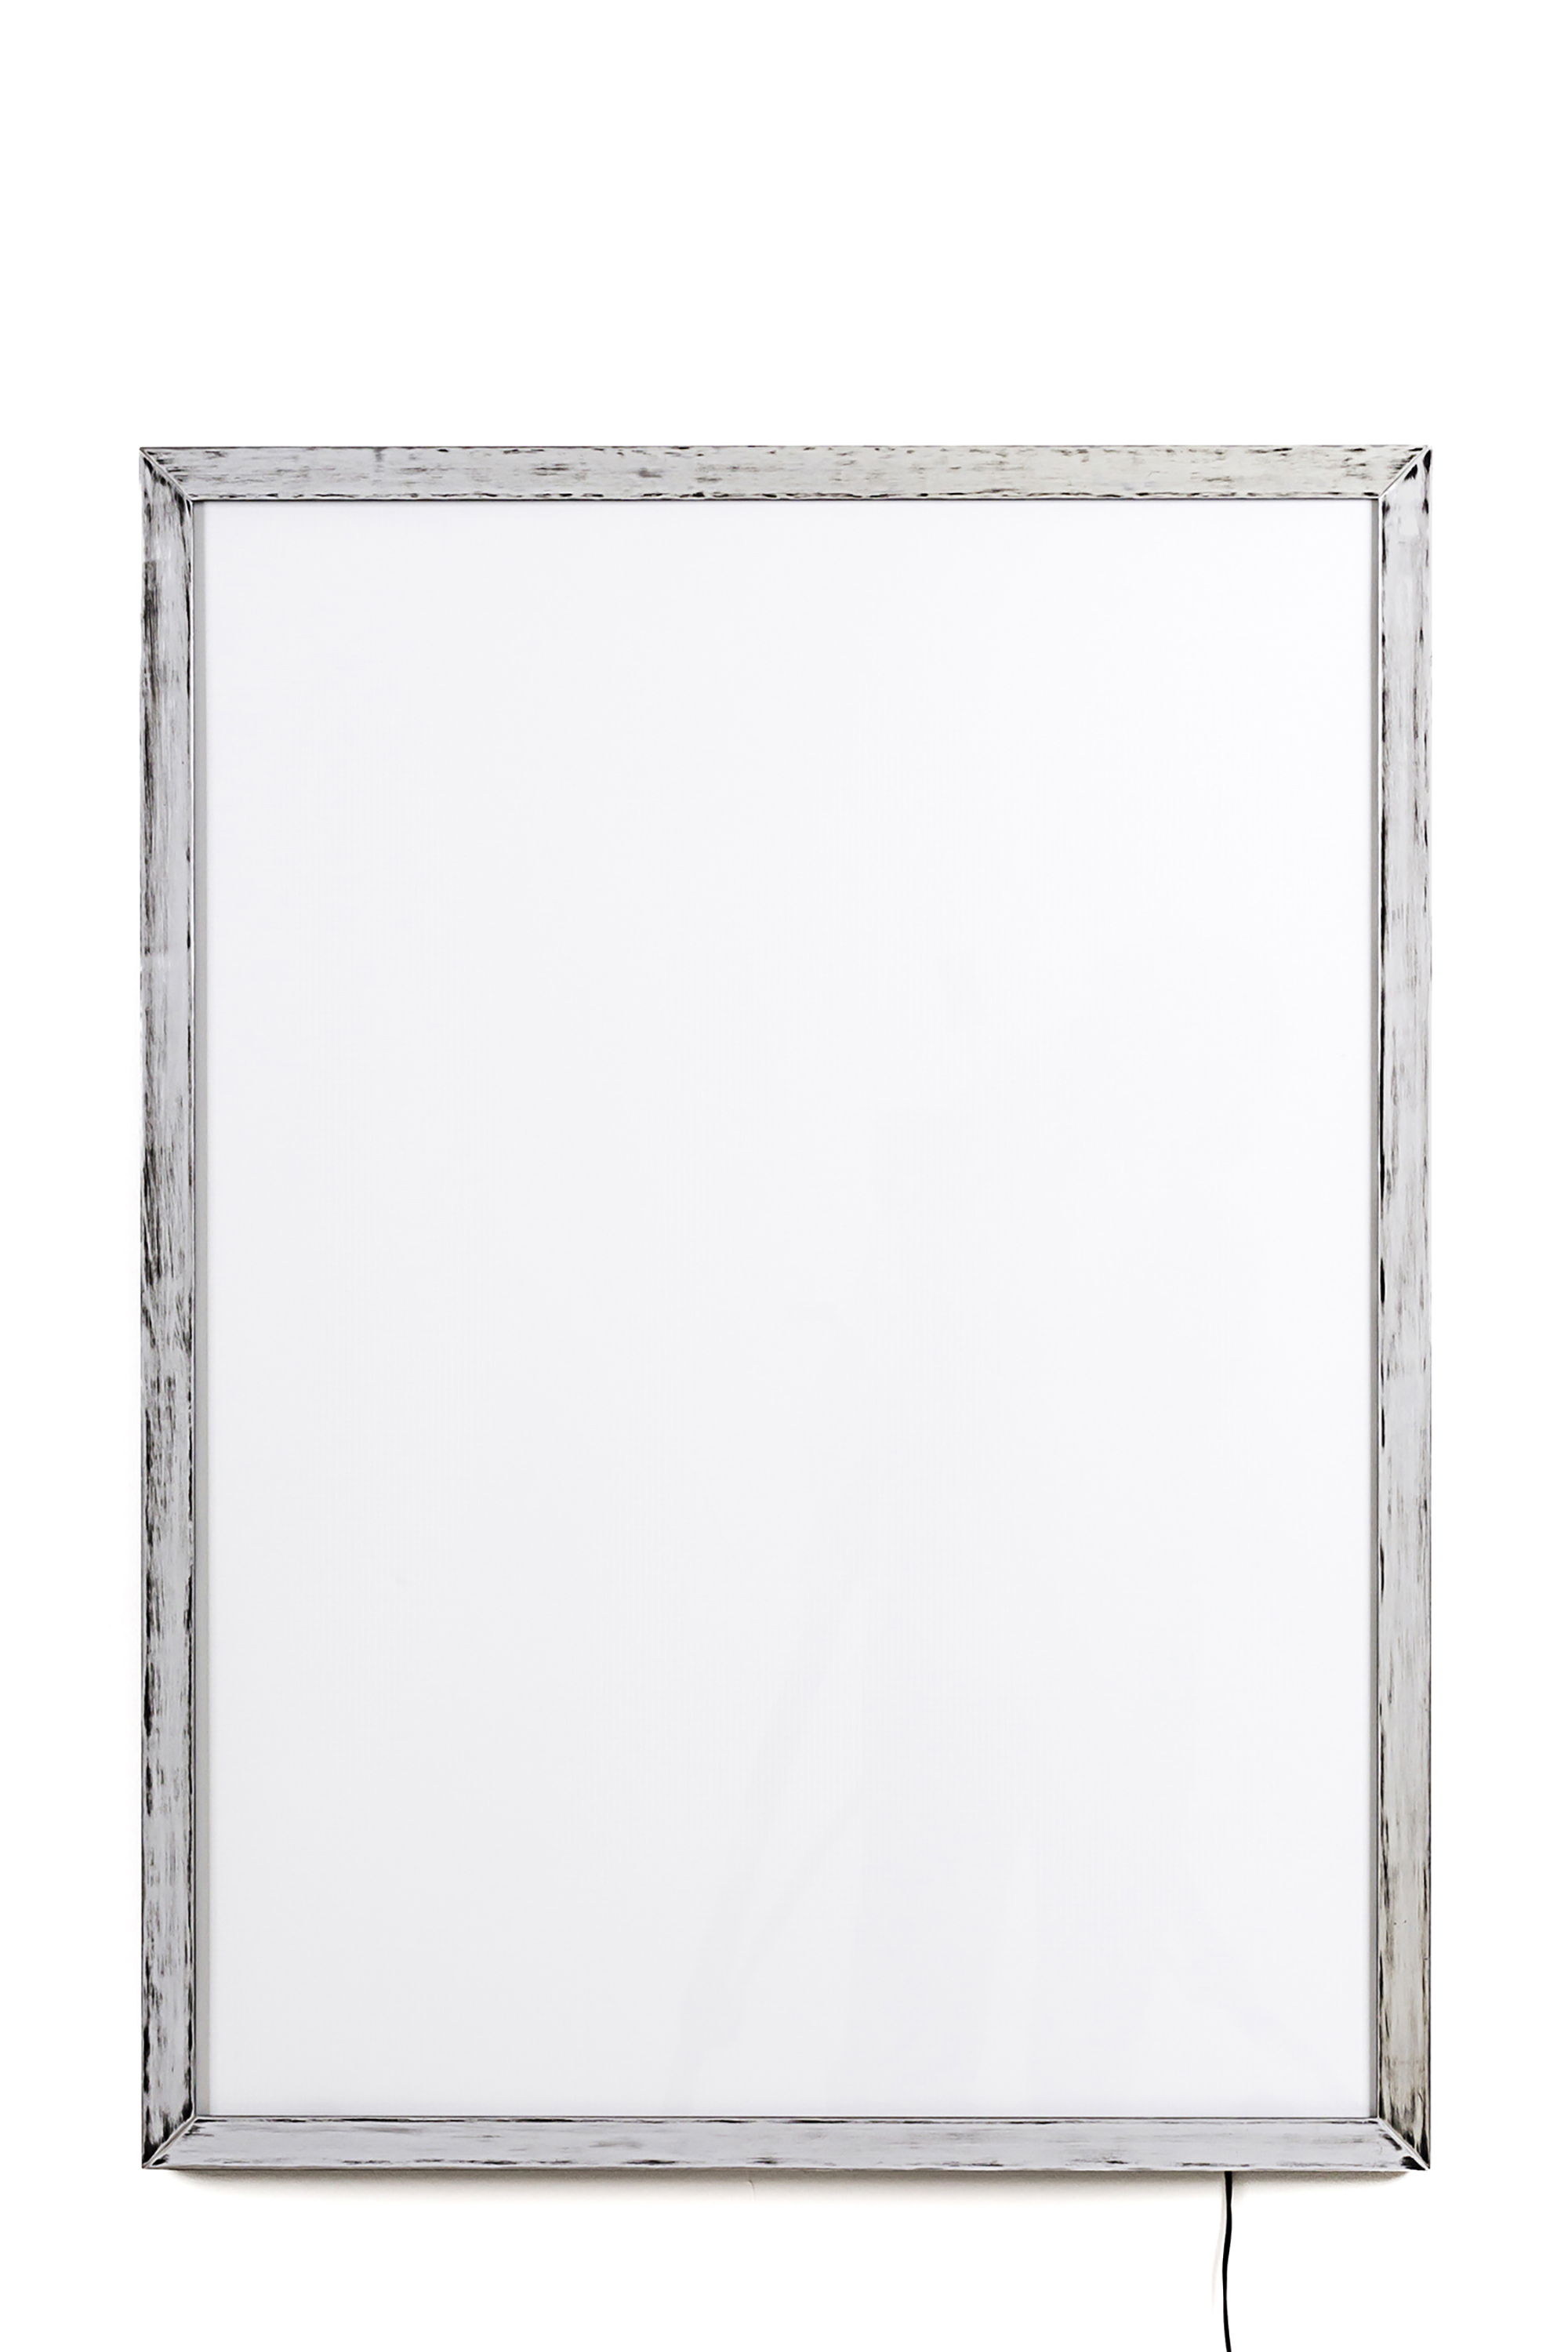 Diesel - 11002 FRAME IT!,  - Home Accessories - Image 1